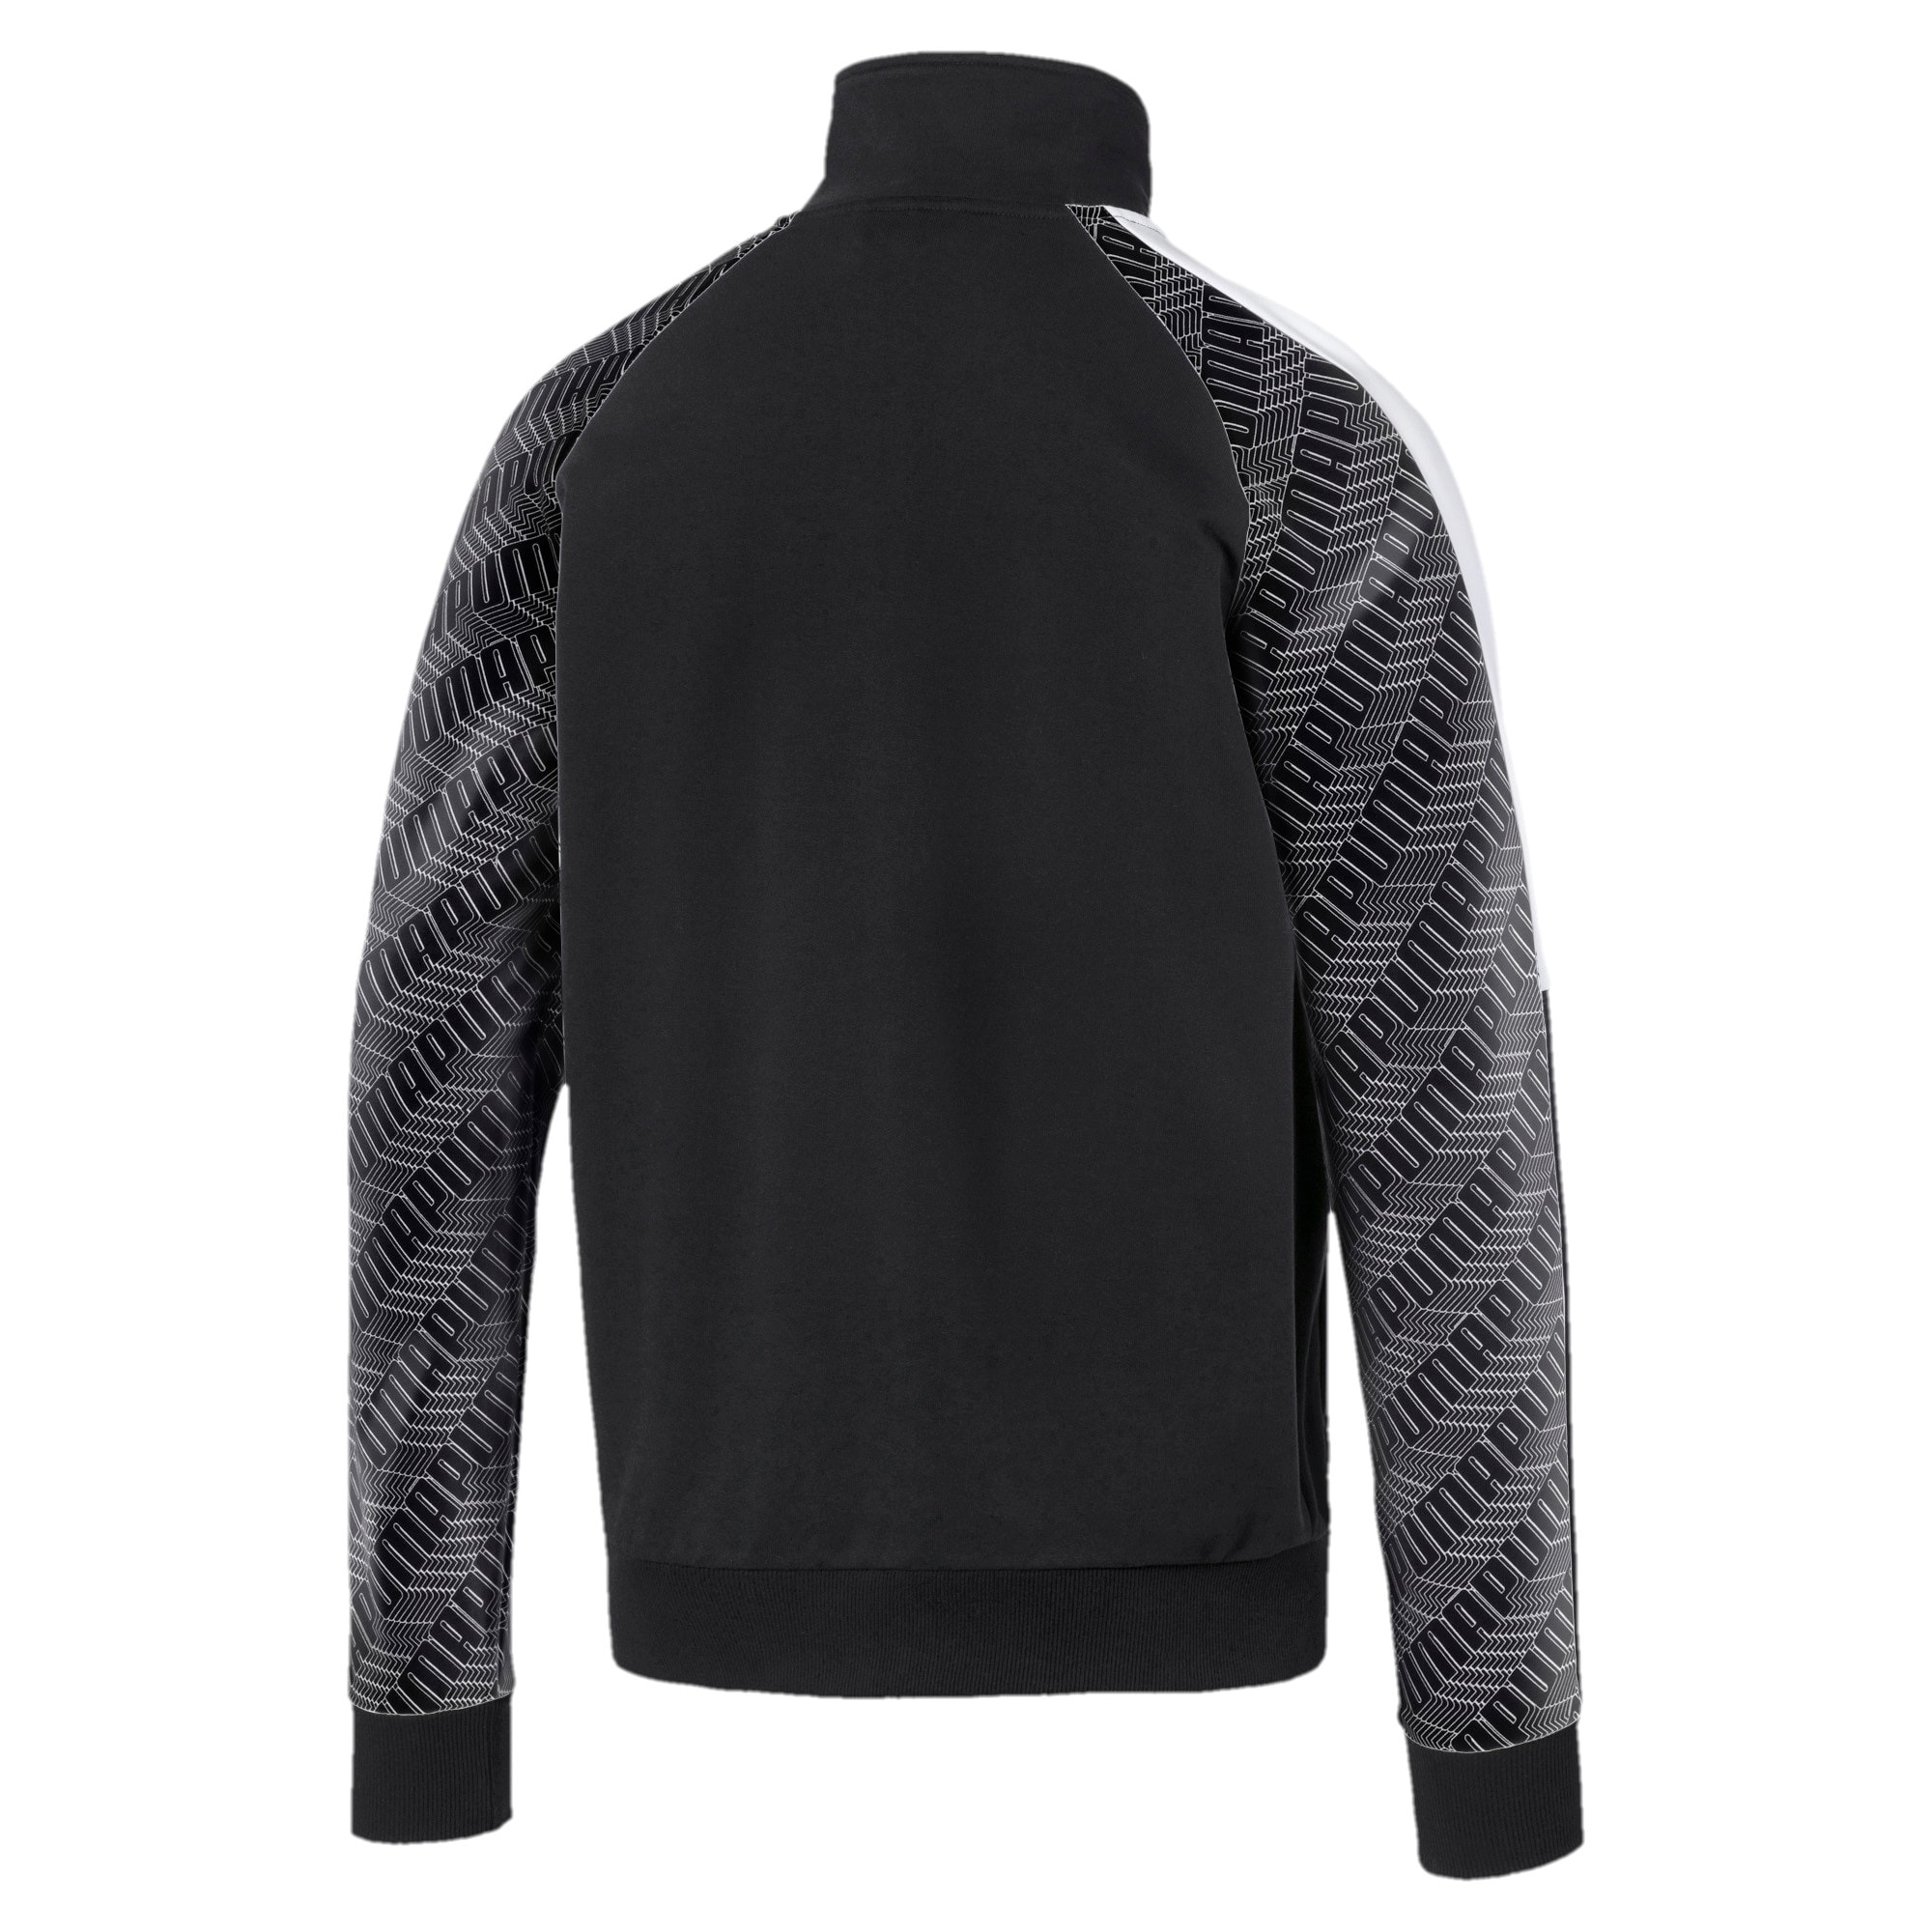 Thumbnail 2 of T7 All-Over Printed Men's Track Jacket, Puma Black-Repeat logo, medium-IND